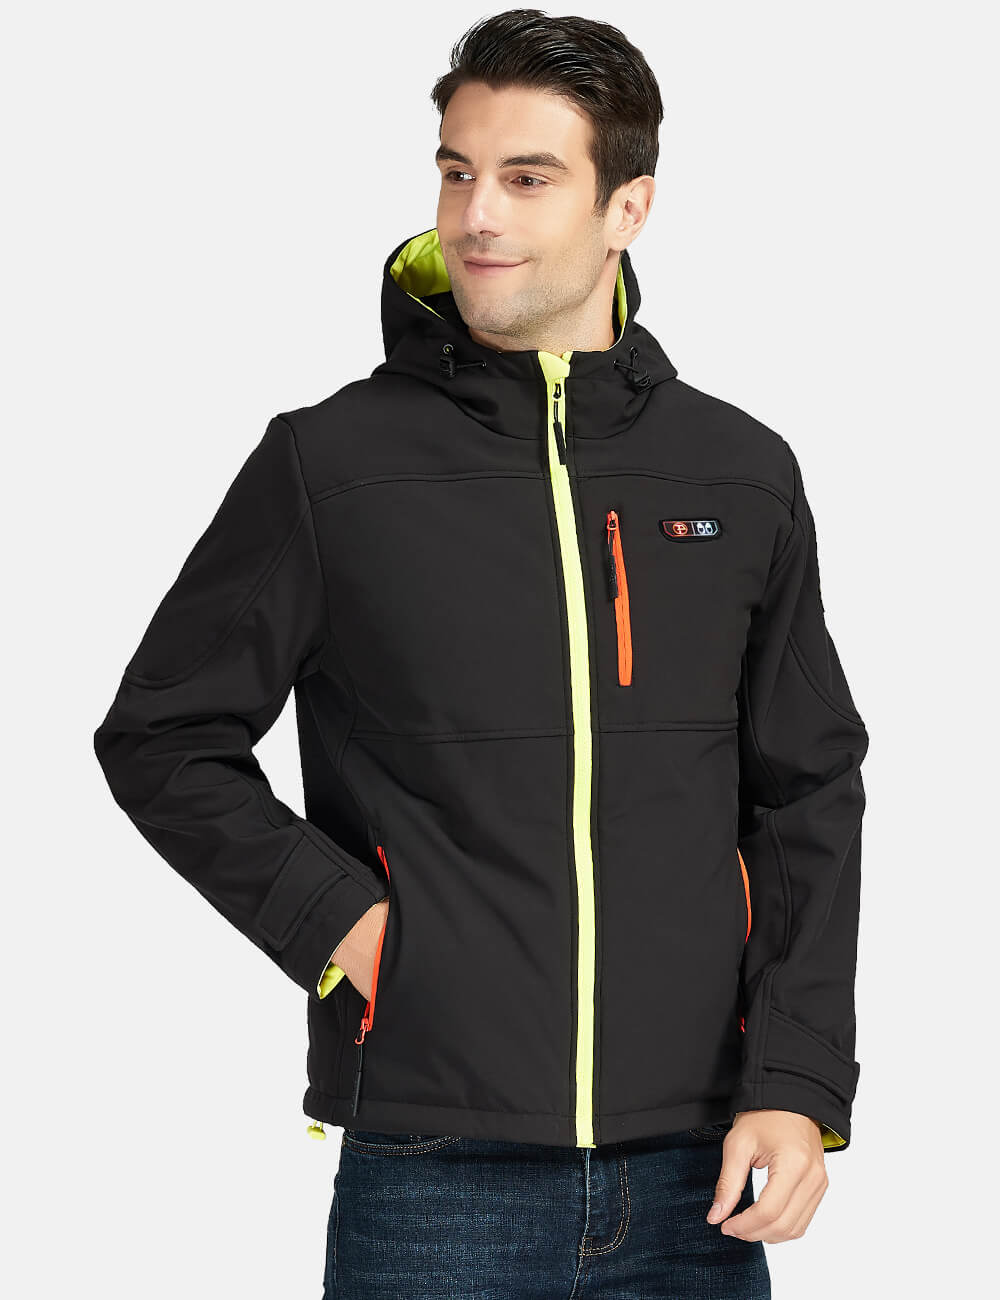 Mens 5 Zone Heated Jacket with Hood with Battery Kit